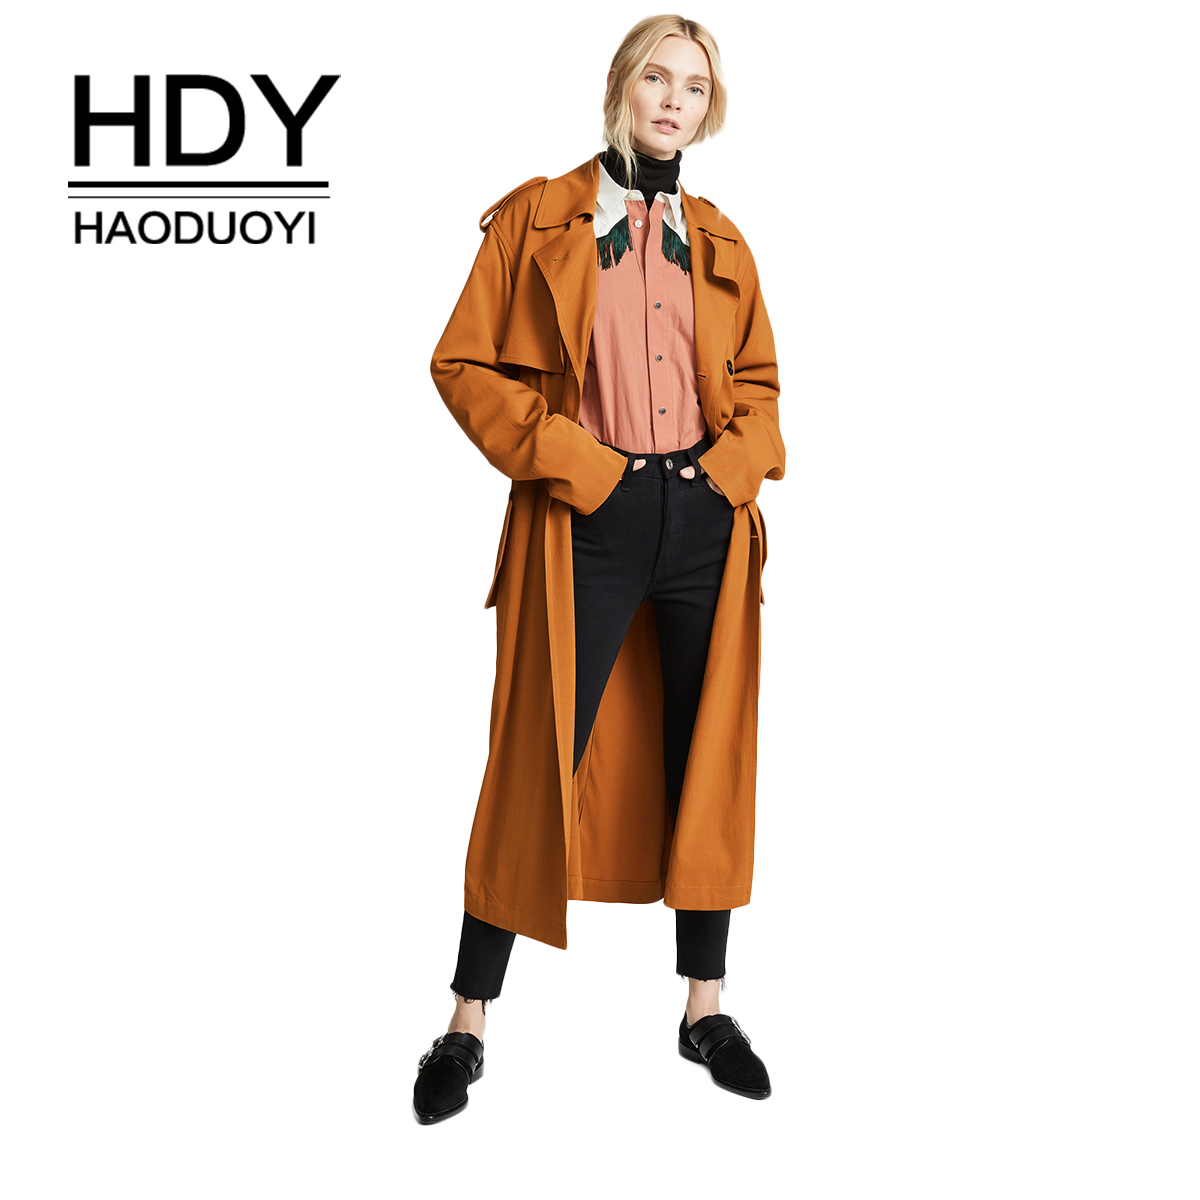 HDY Haoduoyi New Classic European Trench Coat Temperament double breasted Side Zip Women Pea Coat real